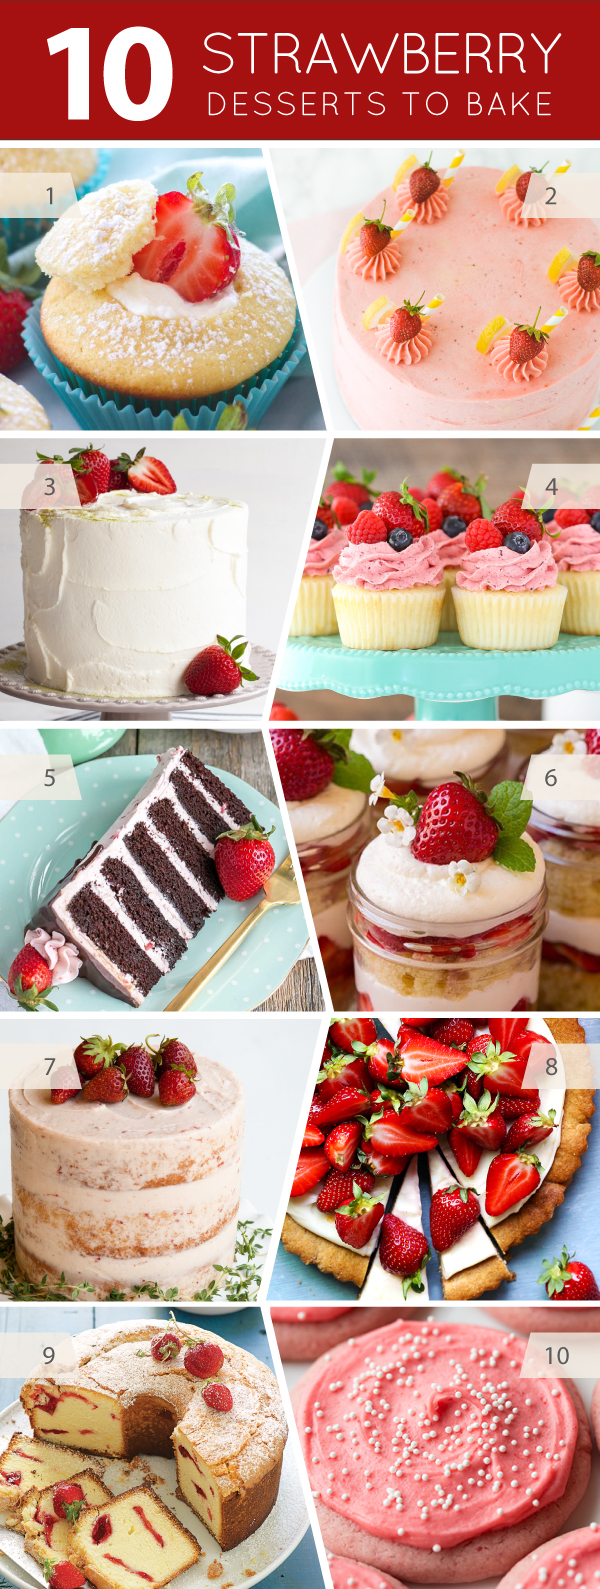 10 Strawberry Desserts to Bake this Summer | on TheCakeBlog.com